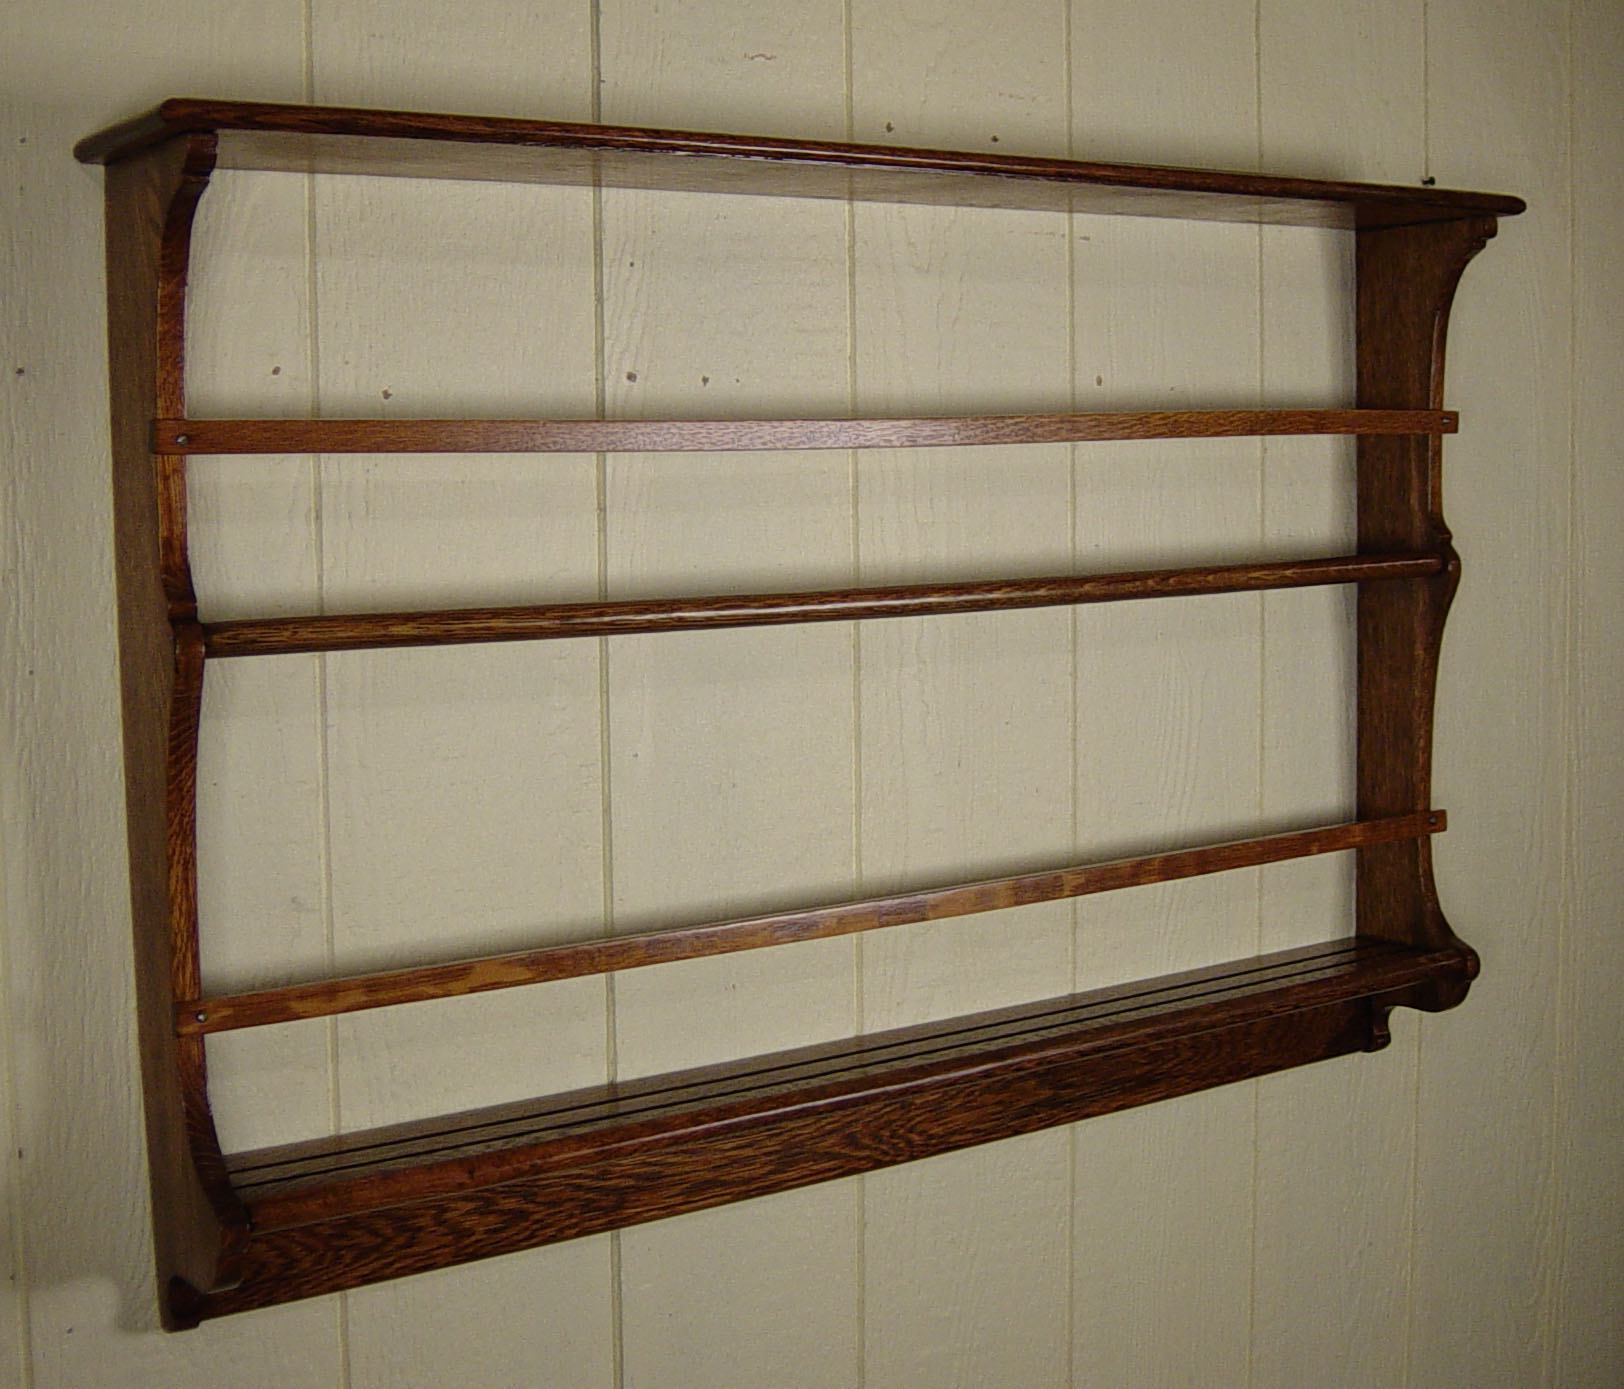 & Hanging Oak Plate Rack